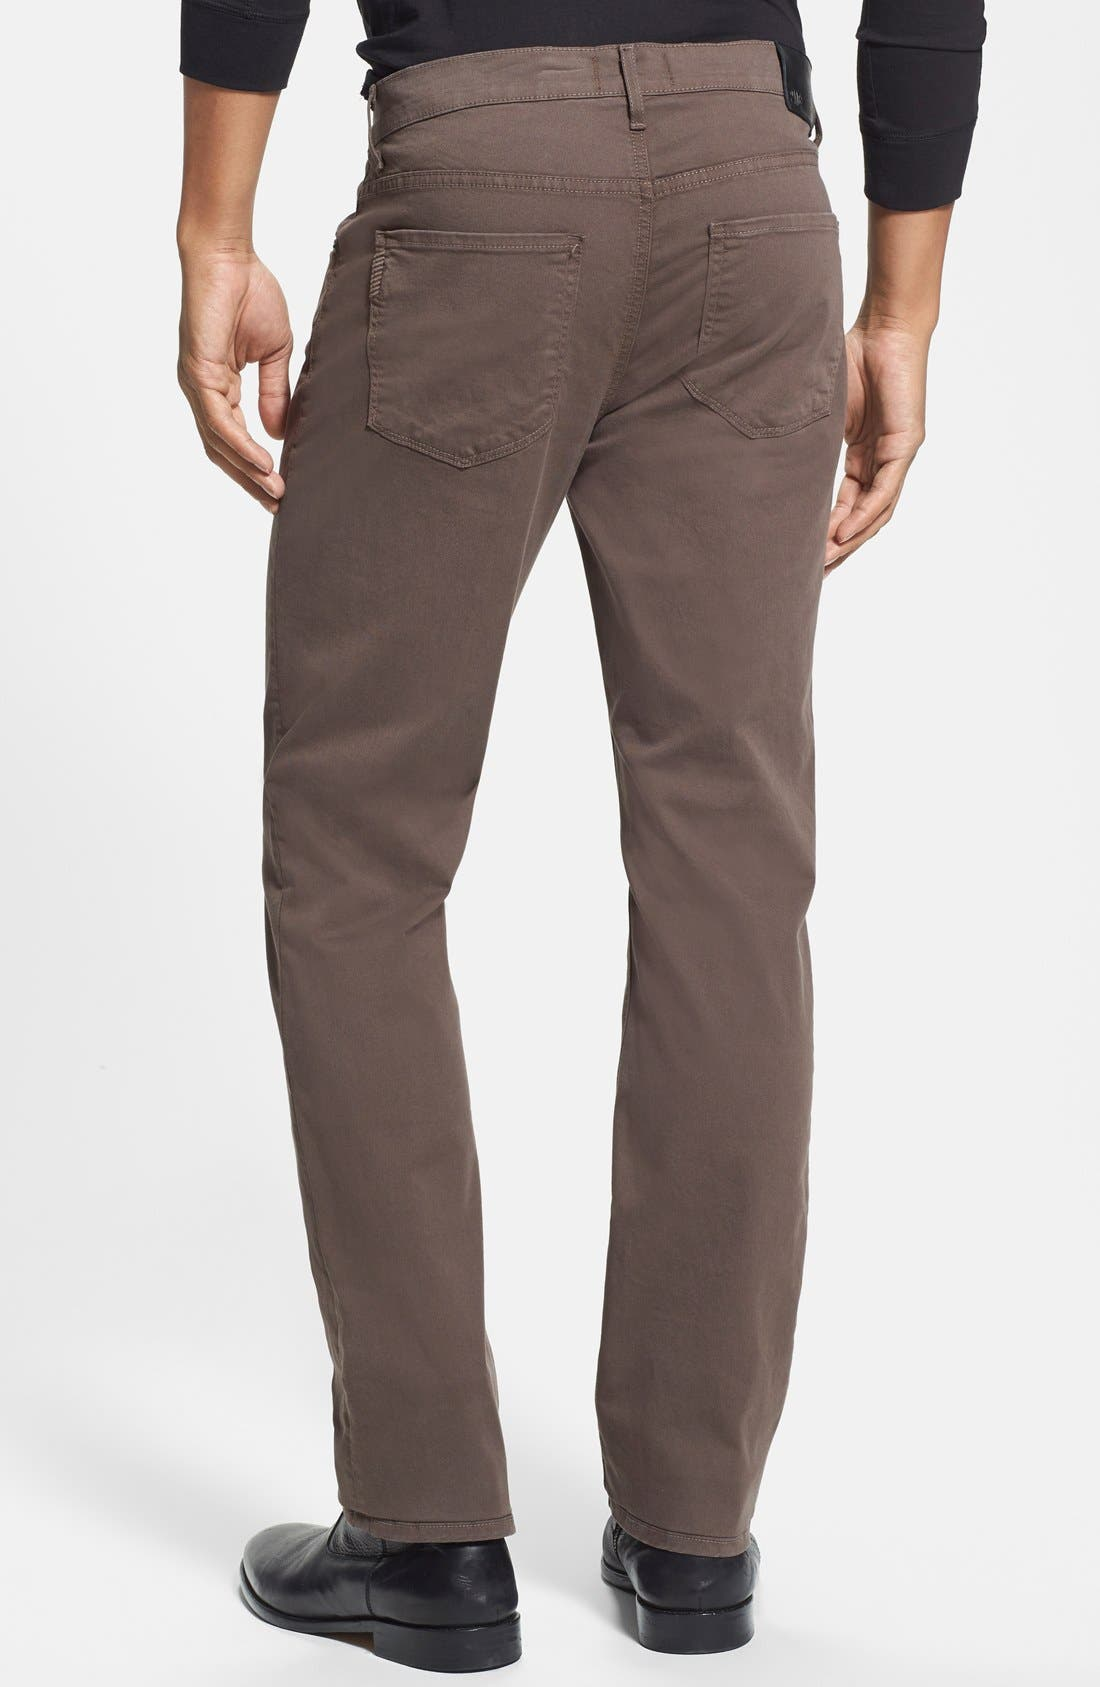 Normandie Slim Straight Leg Twill Pants,                             Alternate thumbnail 19, color,